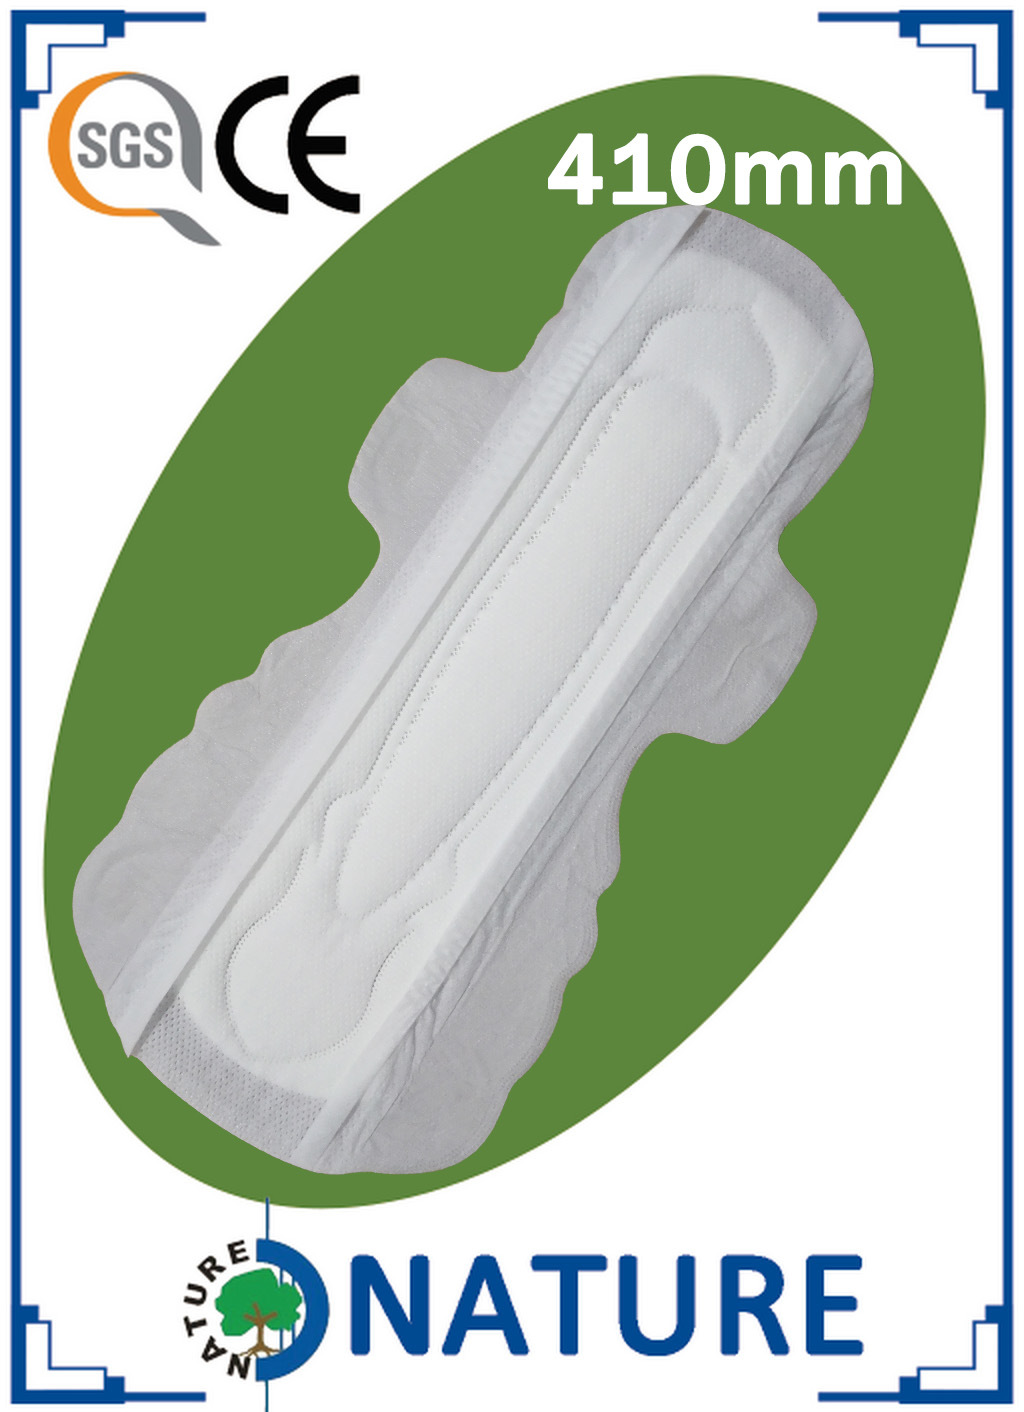 3D Lead Guard Cotton Sanitary Napkin with Double Wings